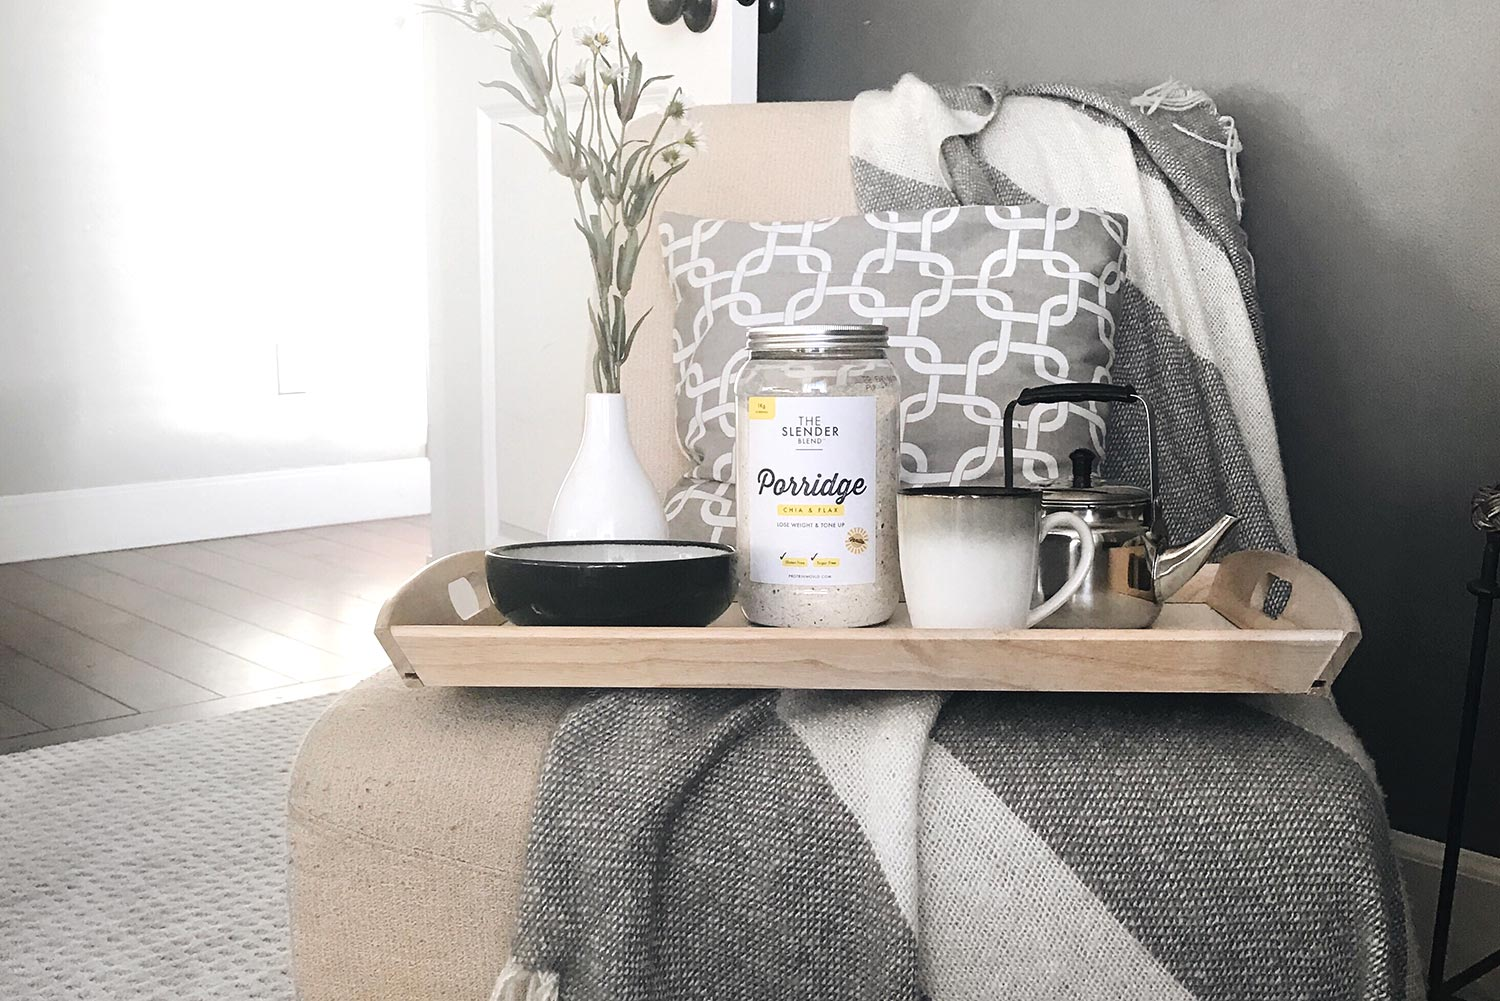 Protein World Slender Porridge